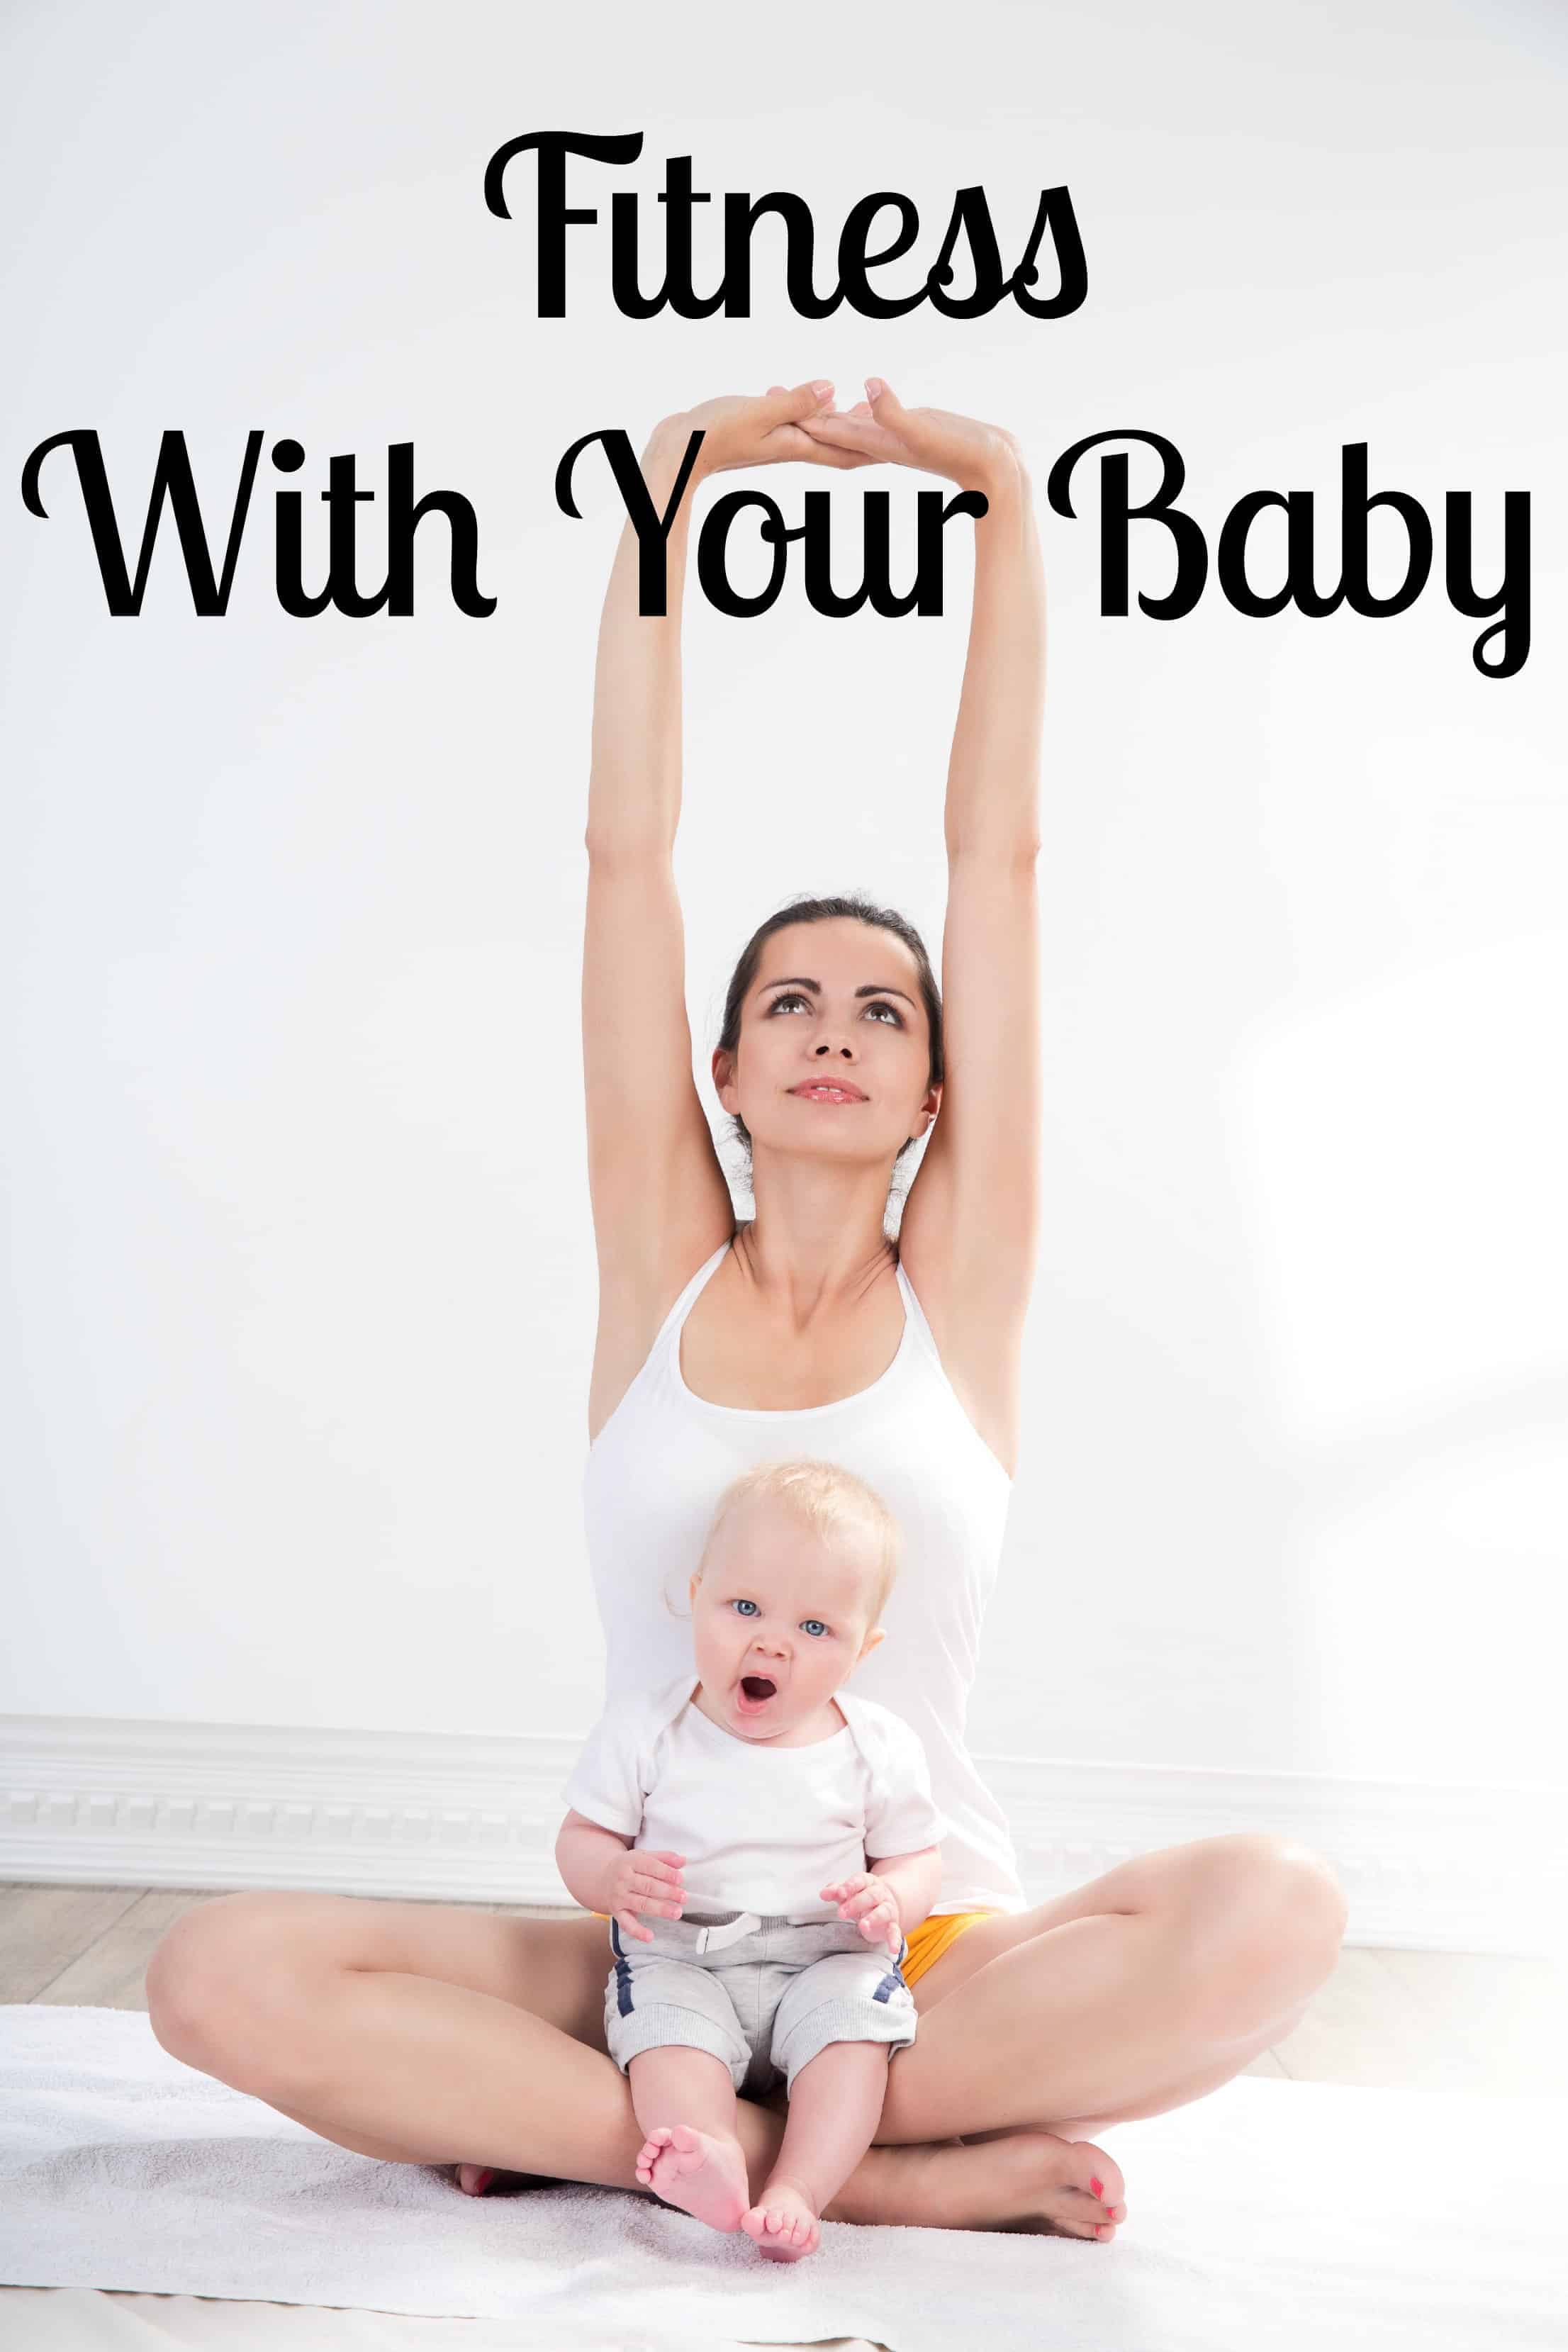 Wondering how to stay in shape with an infant? Check out these fun tips for fitness with a baby! It's easier than you might think to workout with an infant!